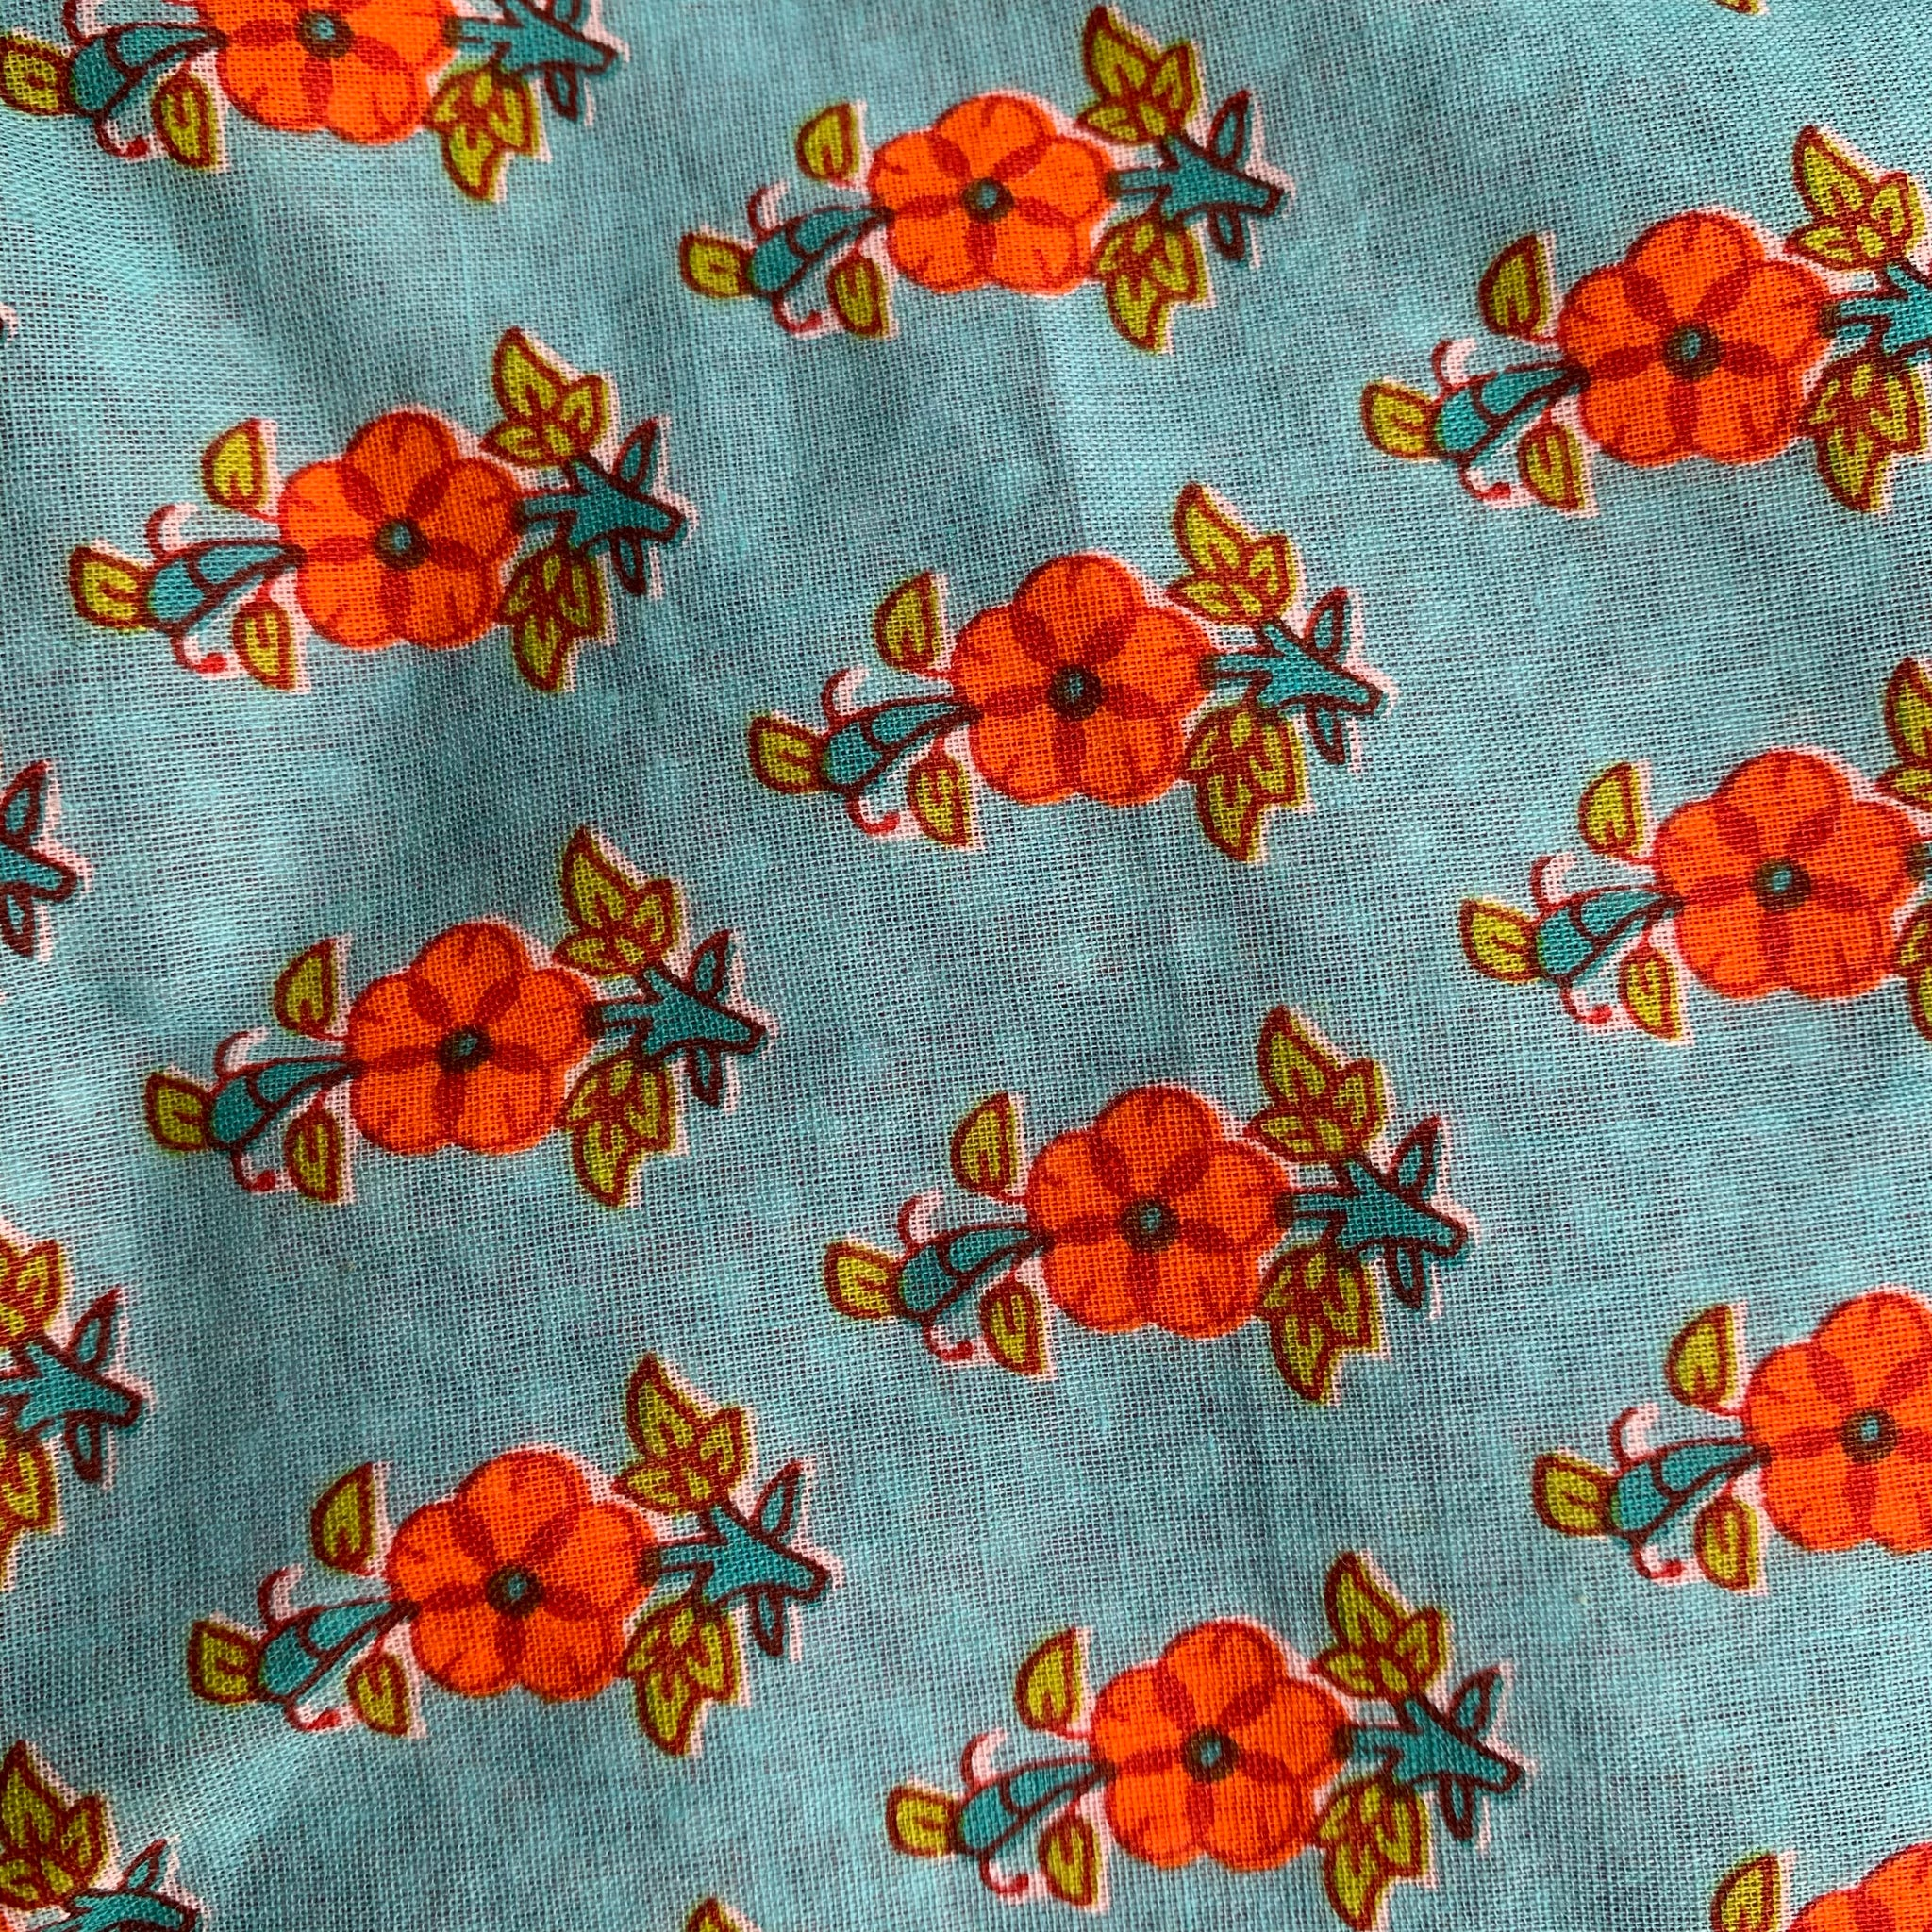 Fair Trade Ethical Reversible Child's Pinafore Turquoise Flower Design.